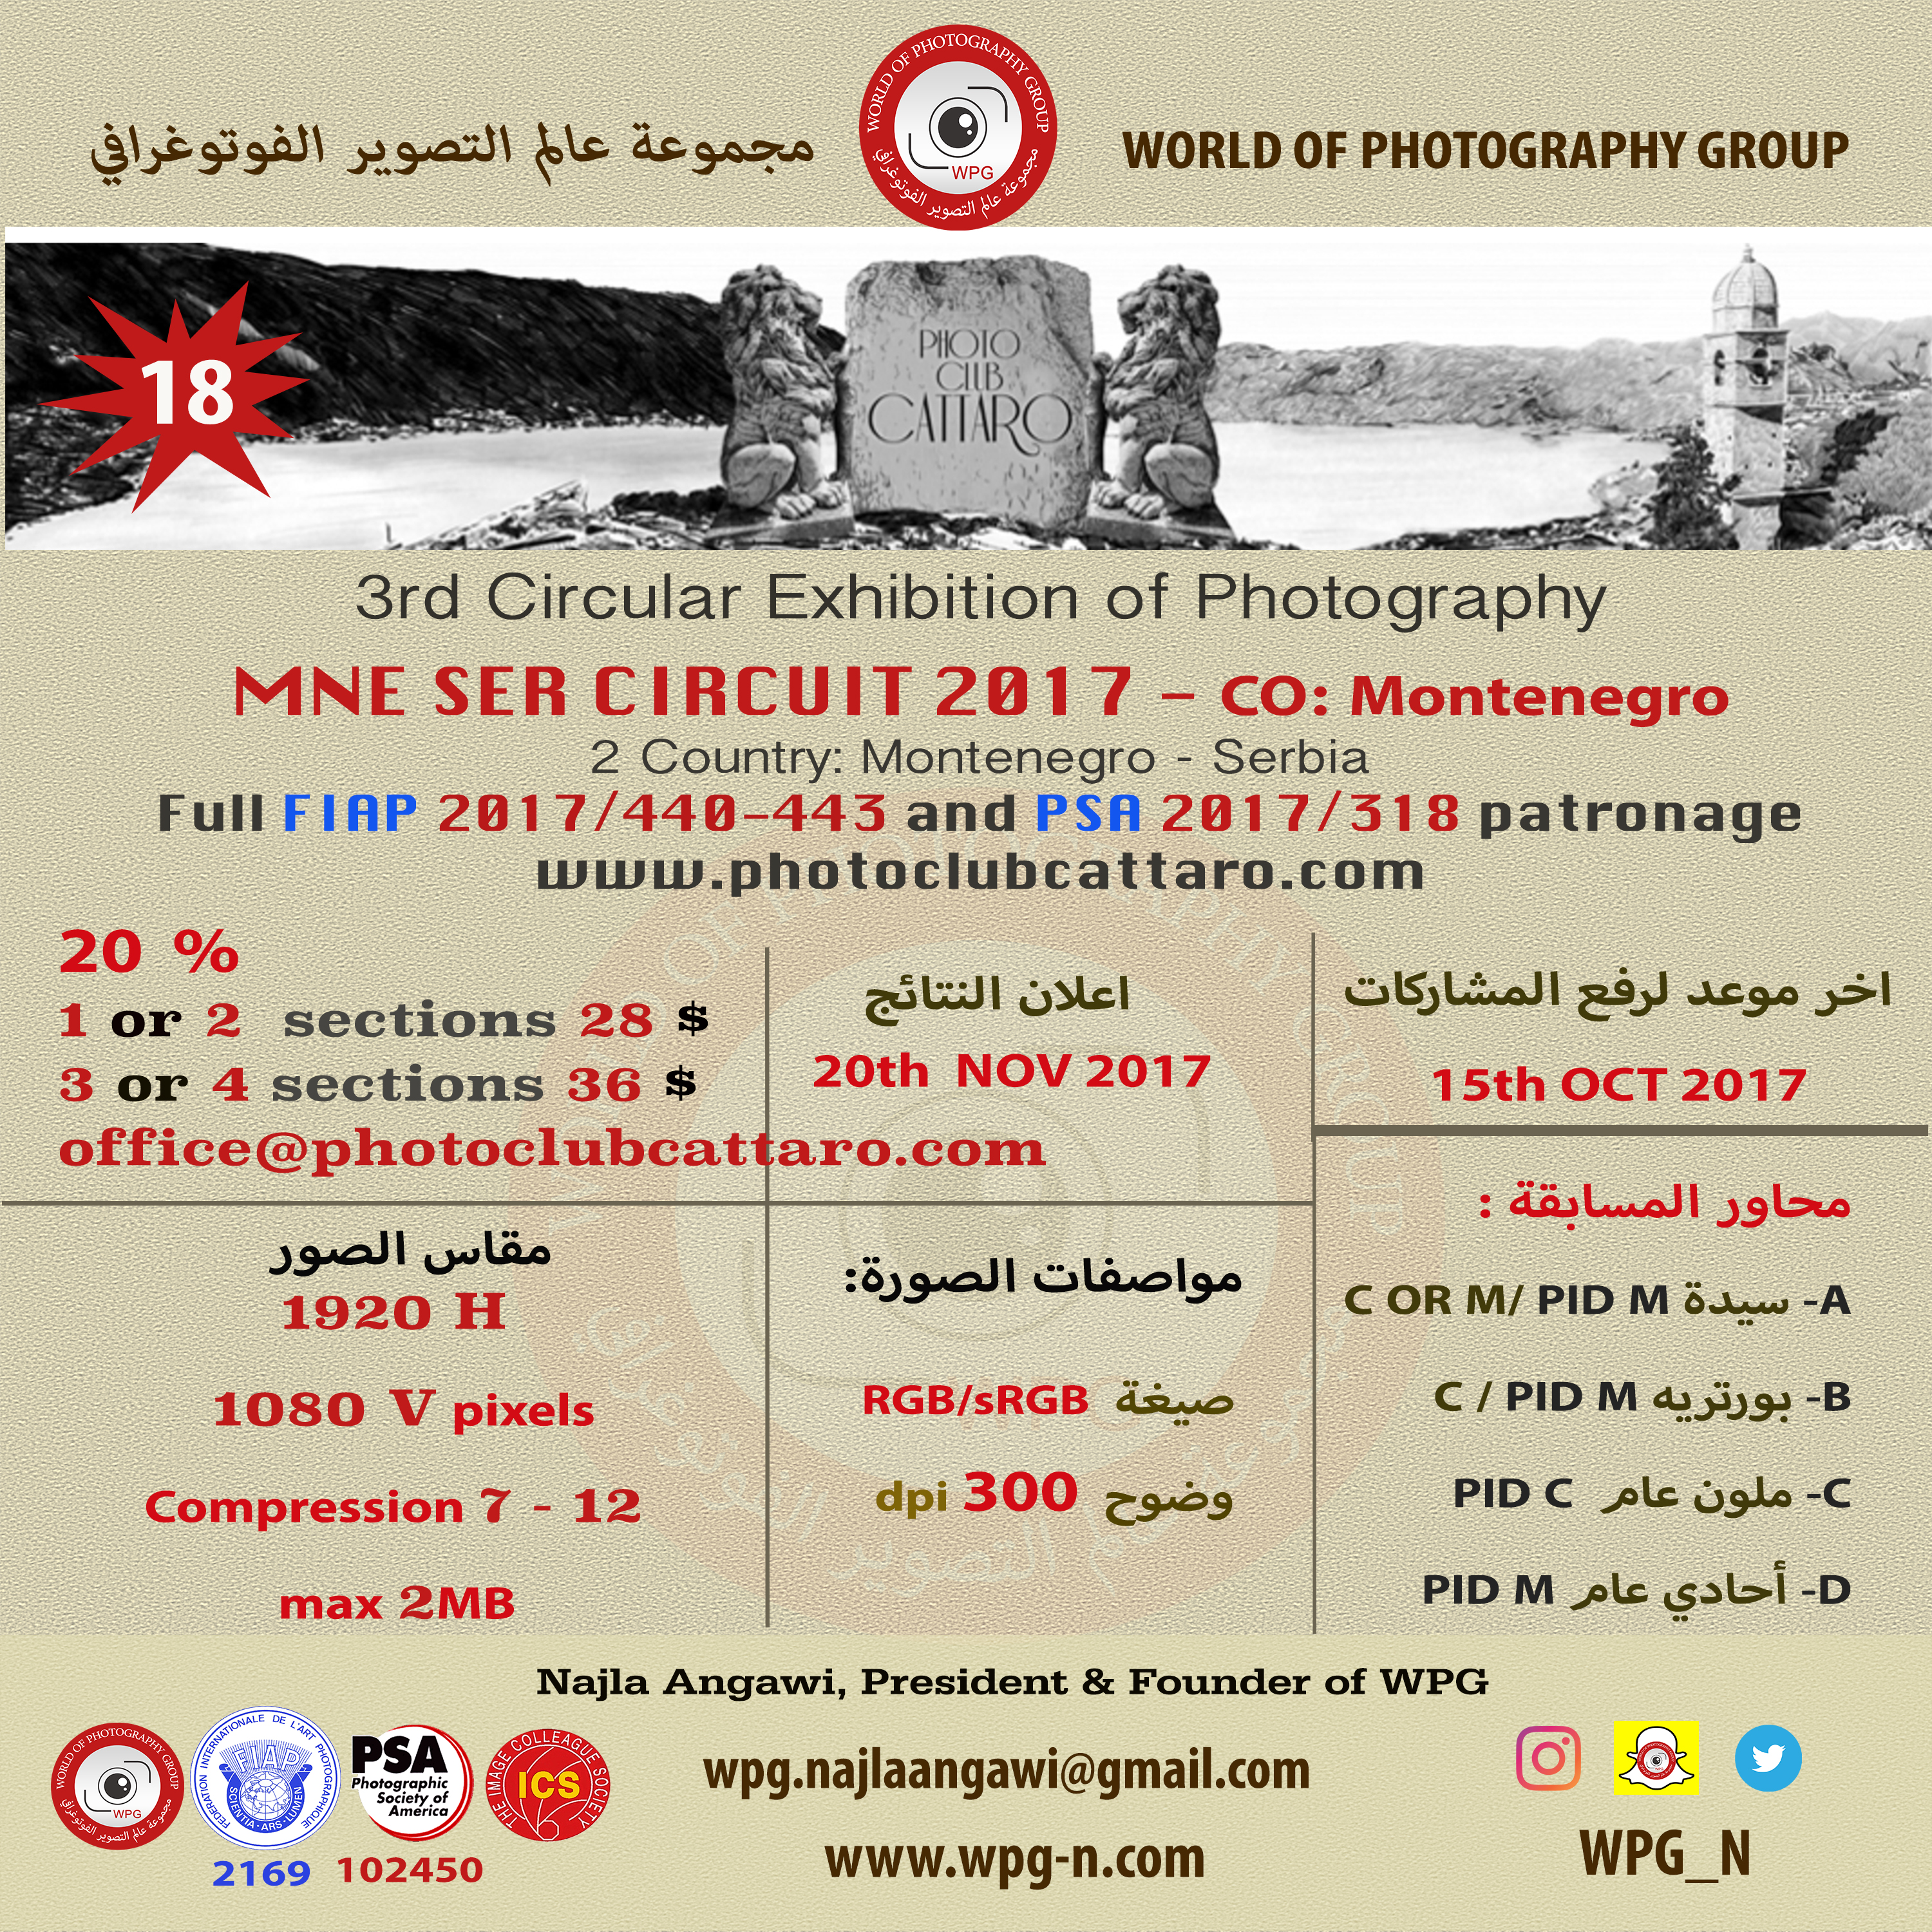 18- 20%MNE SER CIRCUIT 2017 3rd Circular Exhibition of Photography